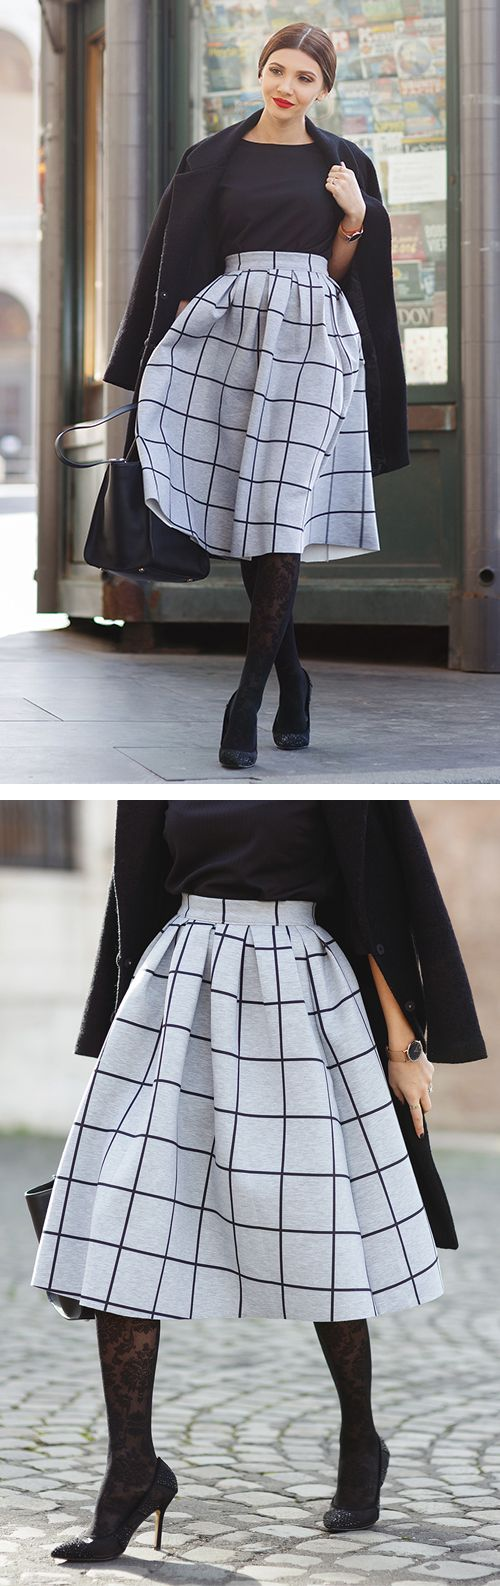 Get super sophisticated yet casual and comfy in our Grid Pleat pleated midi skirt composed of scuba fabric! Style with a tucked denim button-down and closed toe heels for a chic street style ensemble! Grid Print Pleated Midi Skirt featured by larisacostea Blog